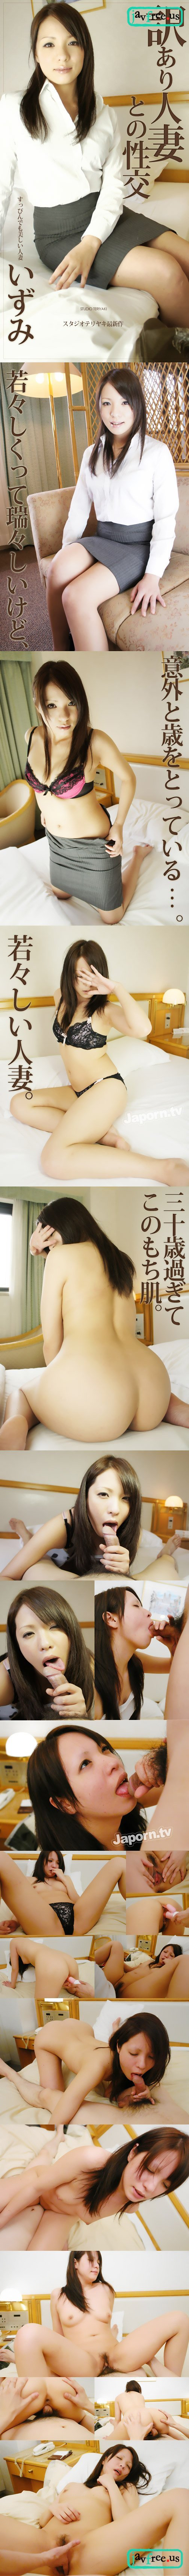 [DT 018] Sex with Married Woman Vol.9 : Izumi Izumi DT